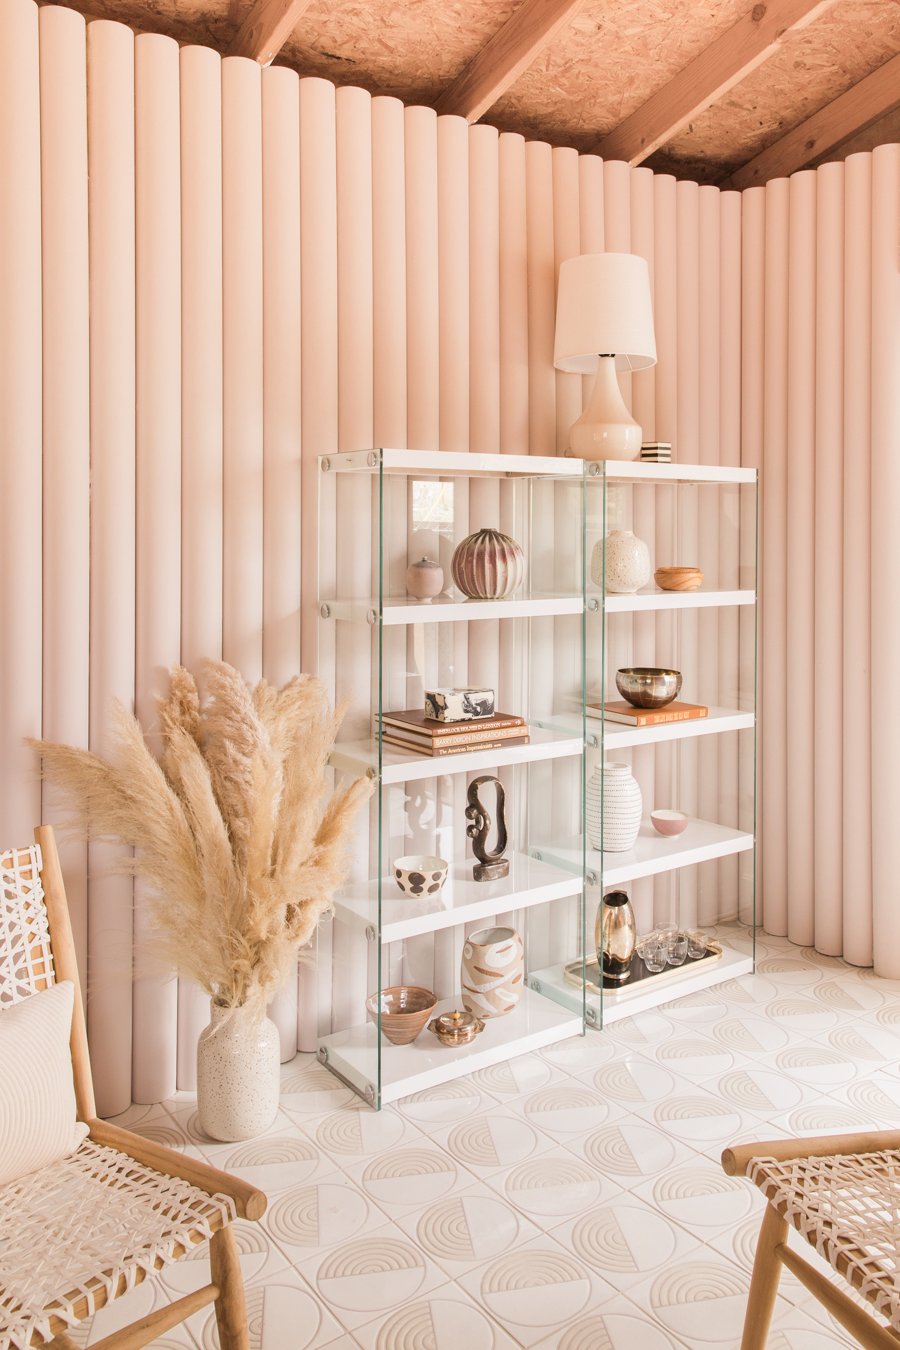 Pvc Pipes Walls 80's Style Glass Shelves - Anne Sage